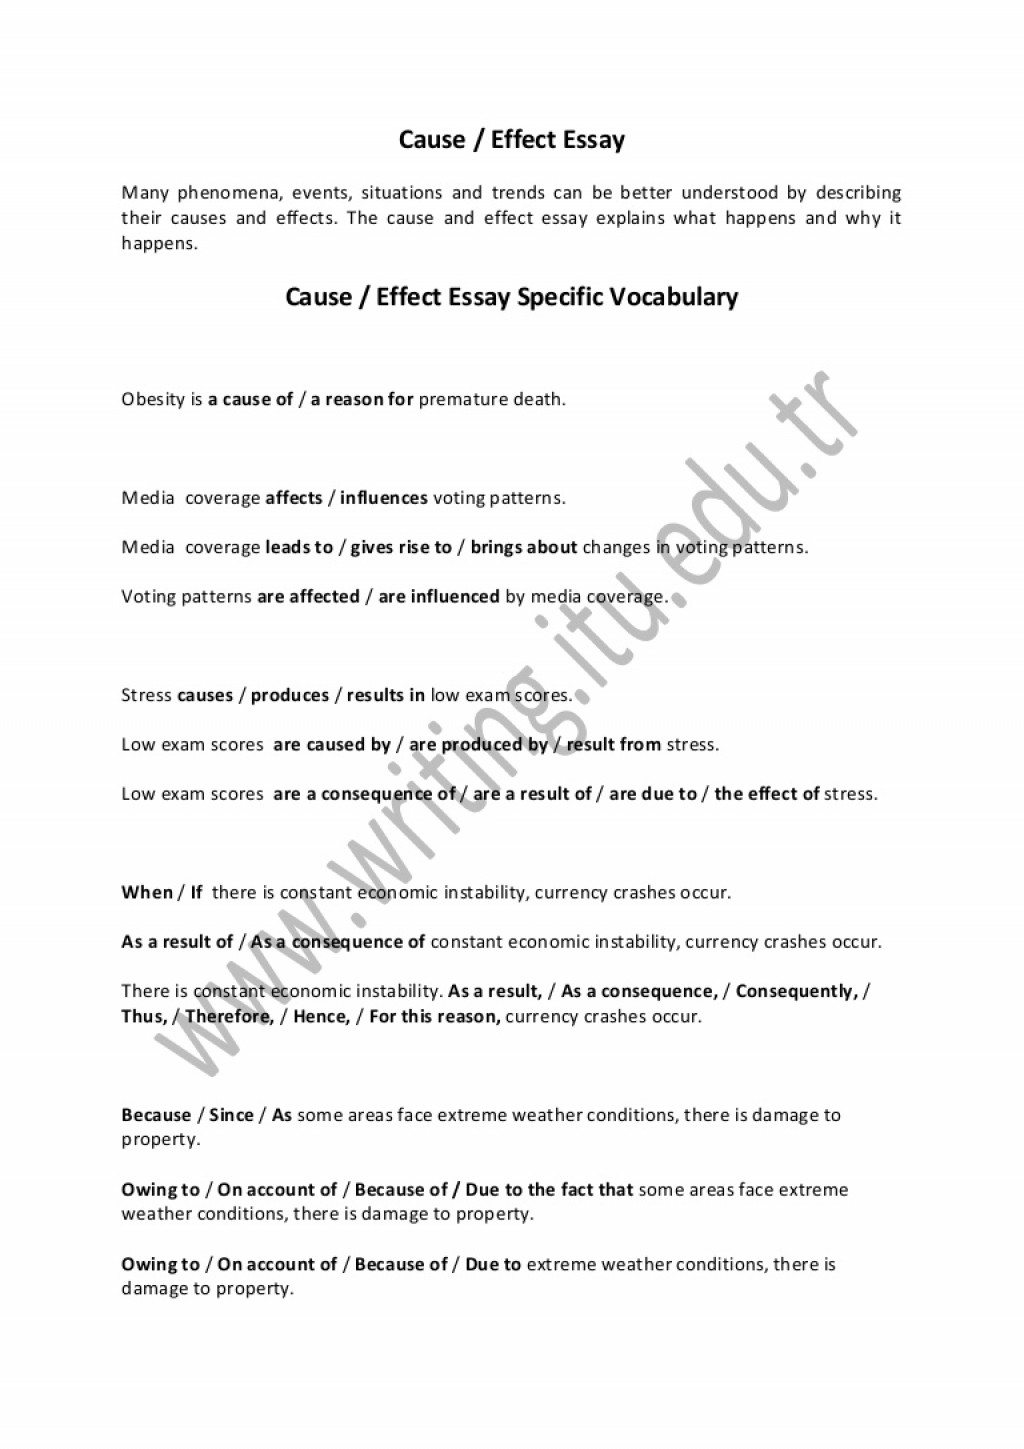 026 Essay Example Causeandeffectessay Thumbnail Sample Cause And Impressive Effect Questions On Sleep Deprivation Bullying Large